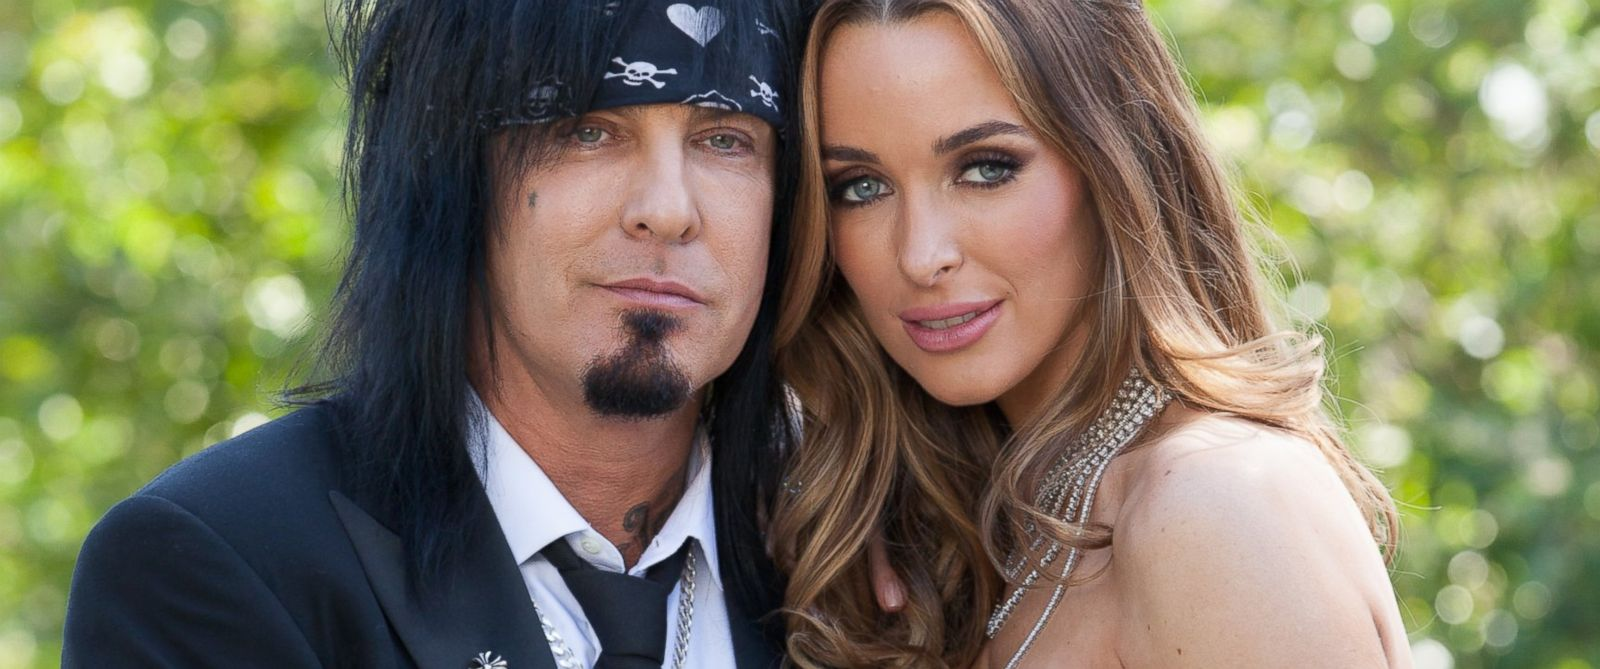 PHOTO: Nikki Sixx, left and Courtney Bingham pose for portraits during their wedding at Greystone Mansion, March 15, 2014 in Beverly Hills, Calif.